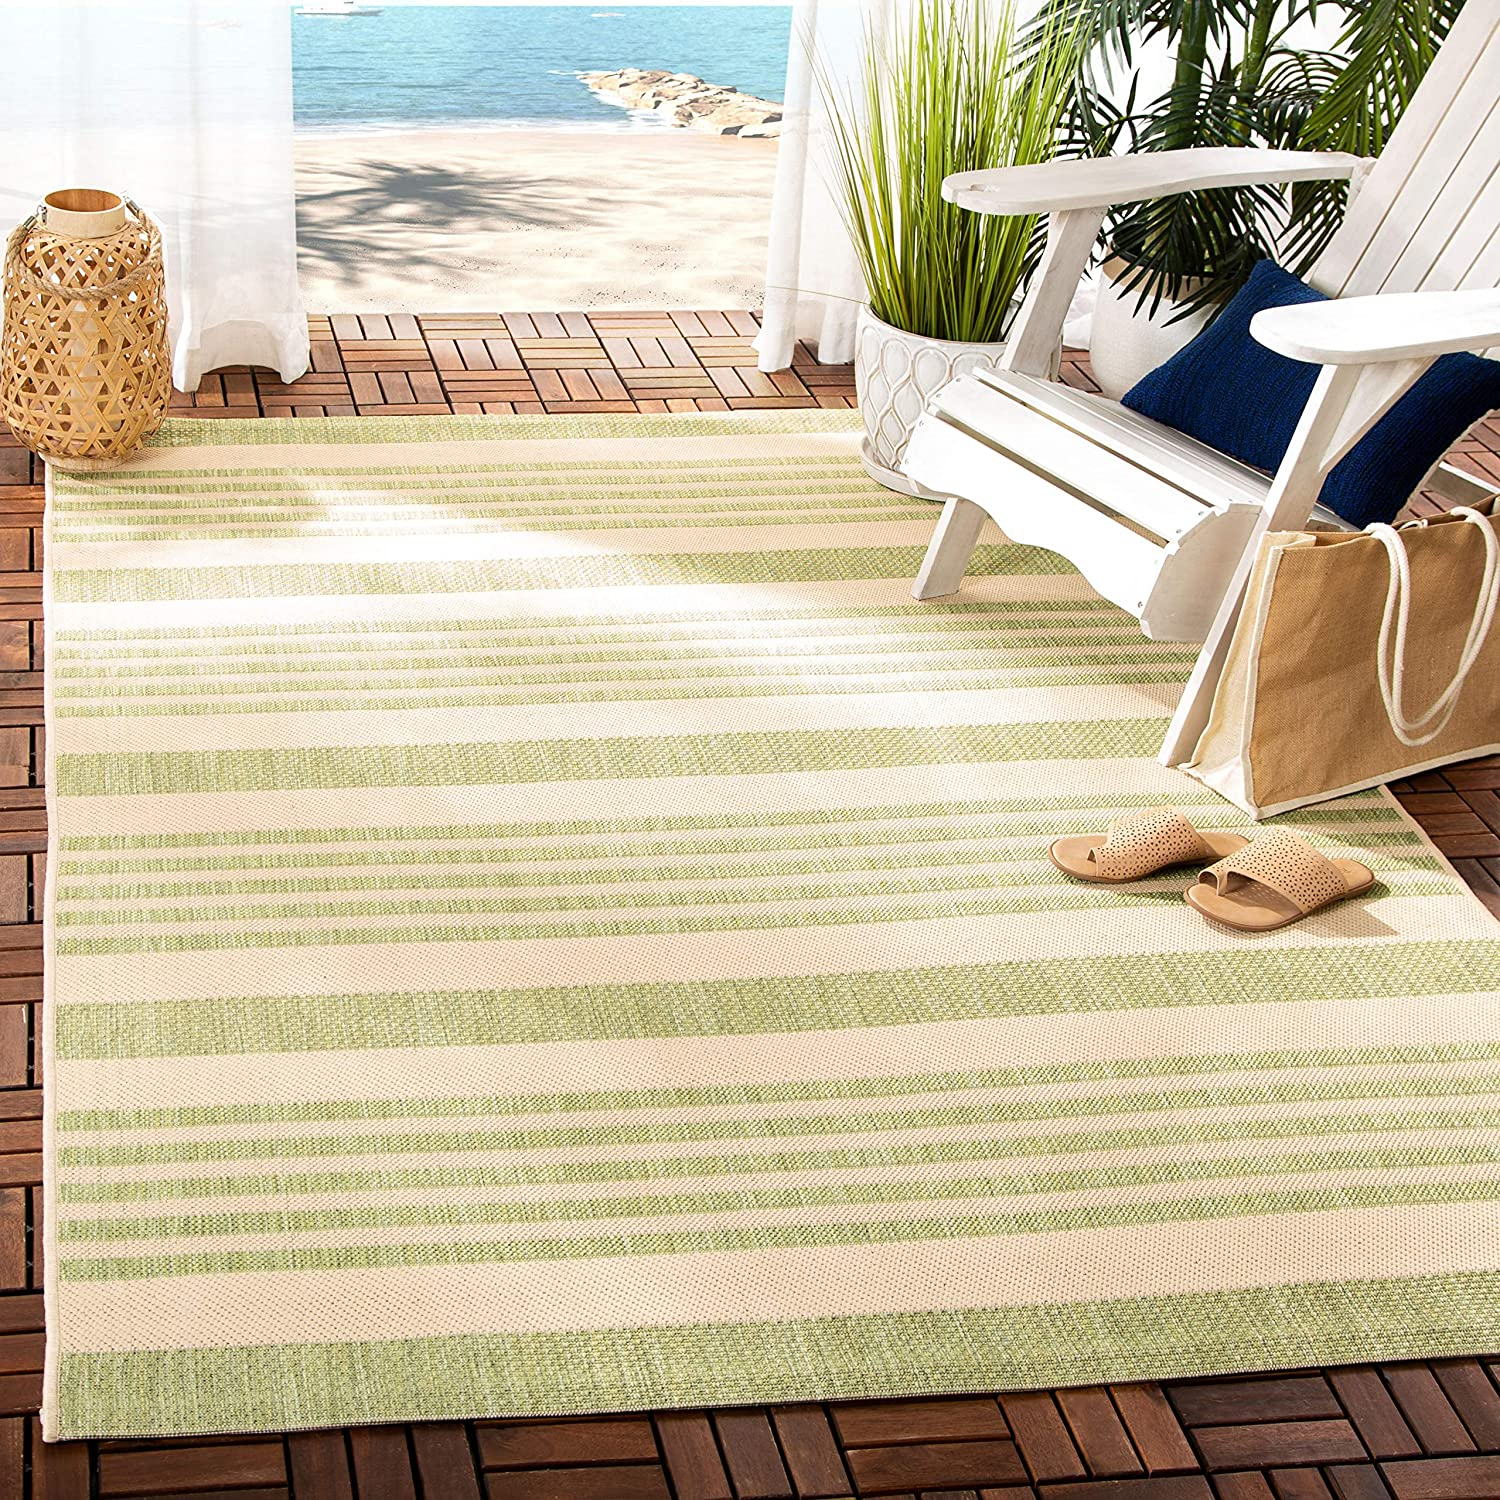 Amazon Com Safavieh Courtyard Collection Cy6062 Stripe Indoor Outdoor Non Shedding Stain Resistant Patio Backyard Area Rug 9 X 12 Beige Sweet Pea Furniture Decor